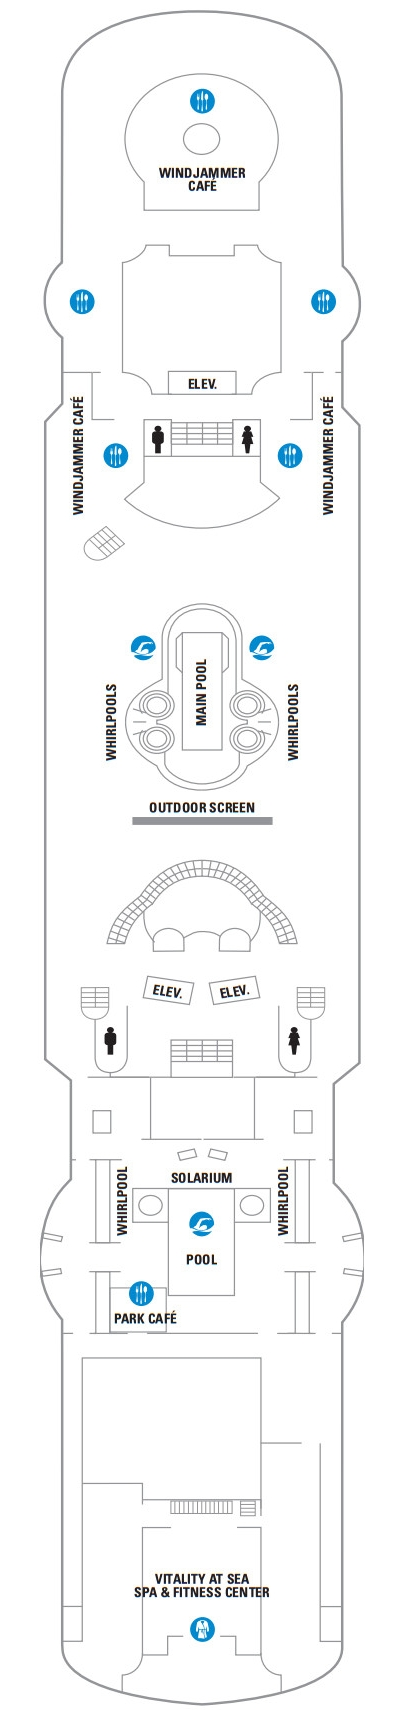 Rhapsody Of The Seas Deck 9 layout